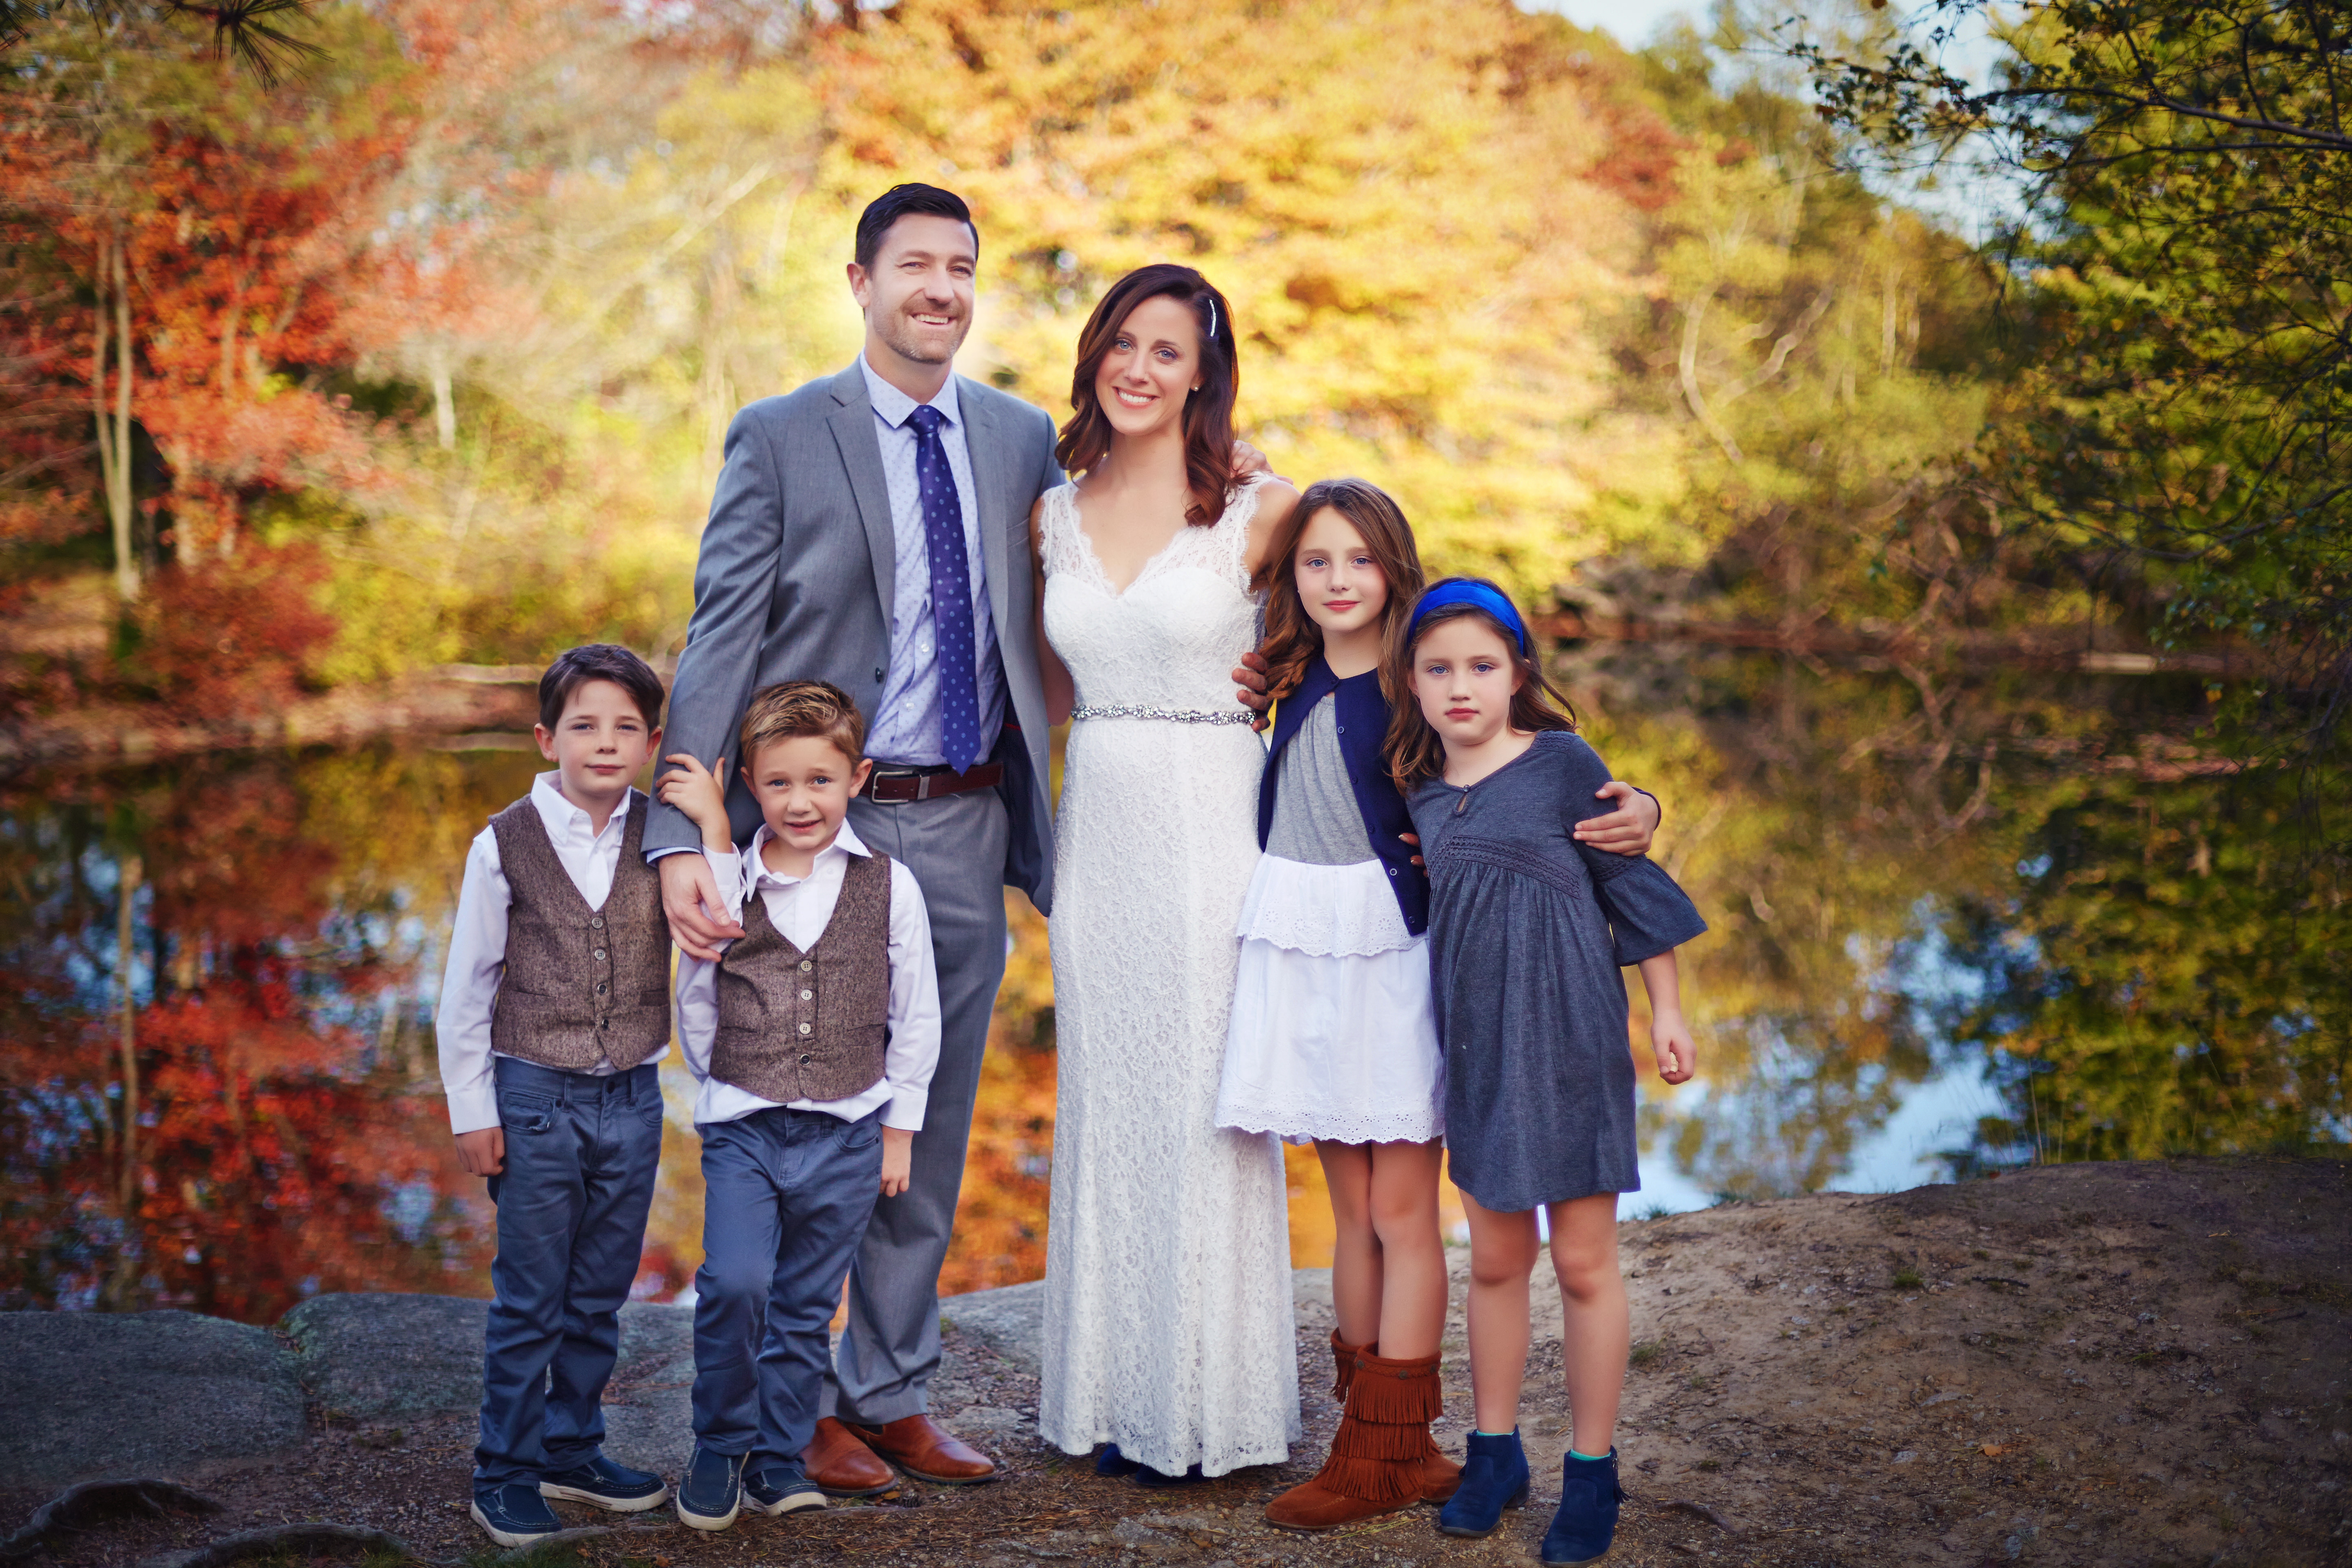 Candid Wedding Photographers in Pennsylvania, wedding venues in pa, barn wedding venues, outdoor wedding venues pa, barn wedding venues pa, wedding venues in lancaster pa, affordable wedding venues in pa, wedding venues in central pa, cheap wedding venues in pa, inexpensive wedding venues in pa, rustic wedding venues, lancaster wedding venues, affordable wedding venues in Philadelphia, philadelphia wedding venues, wedding halls in pa, places to get married in pa, outside wedding venues in pa, rustic wedding venues pa, poconos wedding venues, wedding venues york pa, small wedding venues in pa, wedding favors, wedding invitations, wedding programs, best wedding venues in pa, barn weddings in pa, wedding shoes, wedding gifts, wedding venues in bucks county pa, wedding flowers, wedding dresses, bridal gowns, wedding bouquets, wedding places in pa, wedding chapels in pa, wedding centerpieces, wedding decorations, wedding flower arrangements, wedding planner, poconos wedding, centerpieces, inexpensive wedding venues in pittsburgh pa, wedding gowns, wedding venues in northeast pa, wedding packages in pa, beach wedding, inexpensive wedding venues in central pa, wedding venues harrisburg pa, wedding venues in montgomery county pa, wedding card, cheap wedding venues in lancaster pa, las vegas weddings, small wedding venues Philadelphia, wedding venues in nepa, key west wedding, gatlinburg weddings, wedding registry, cheap wedding, wedding photography, destination wedding, wedding reception ideas, all inclusive wedding packages pa, cheap wedding venues in bucks county pa, cheap